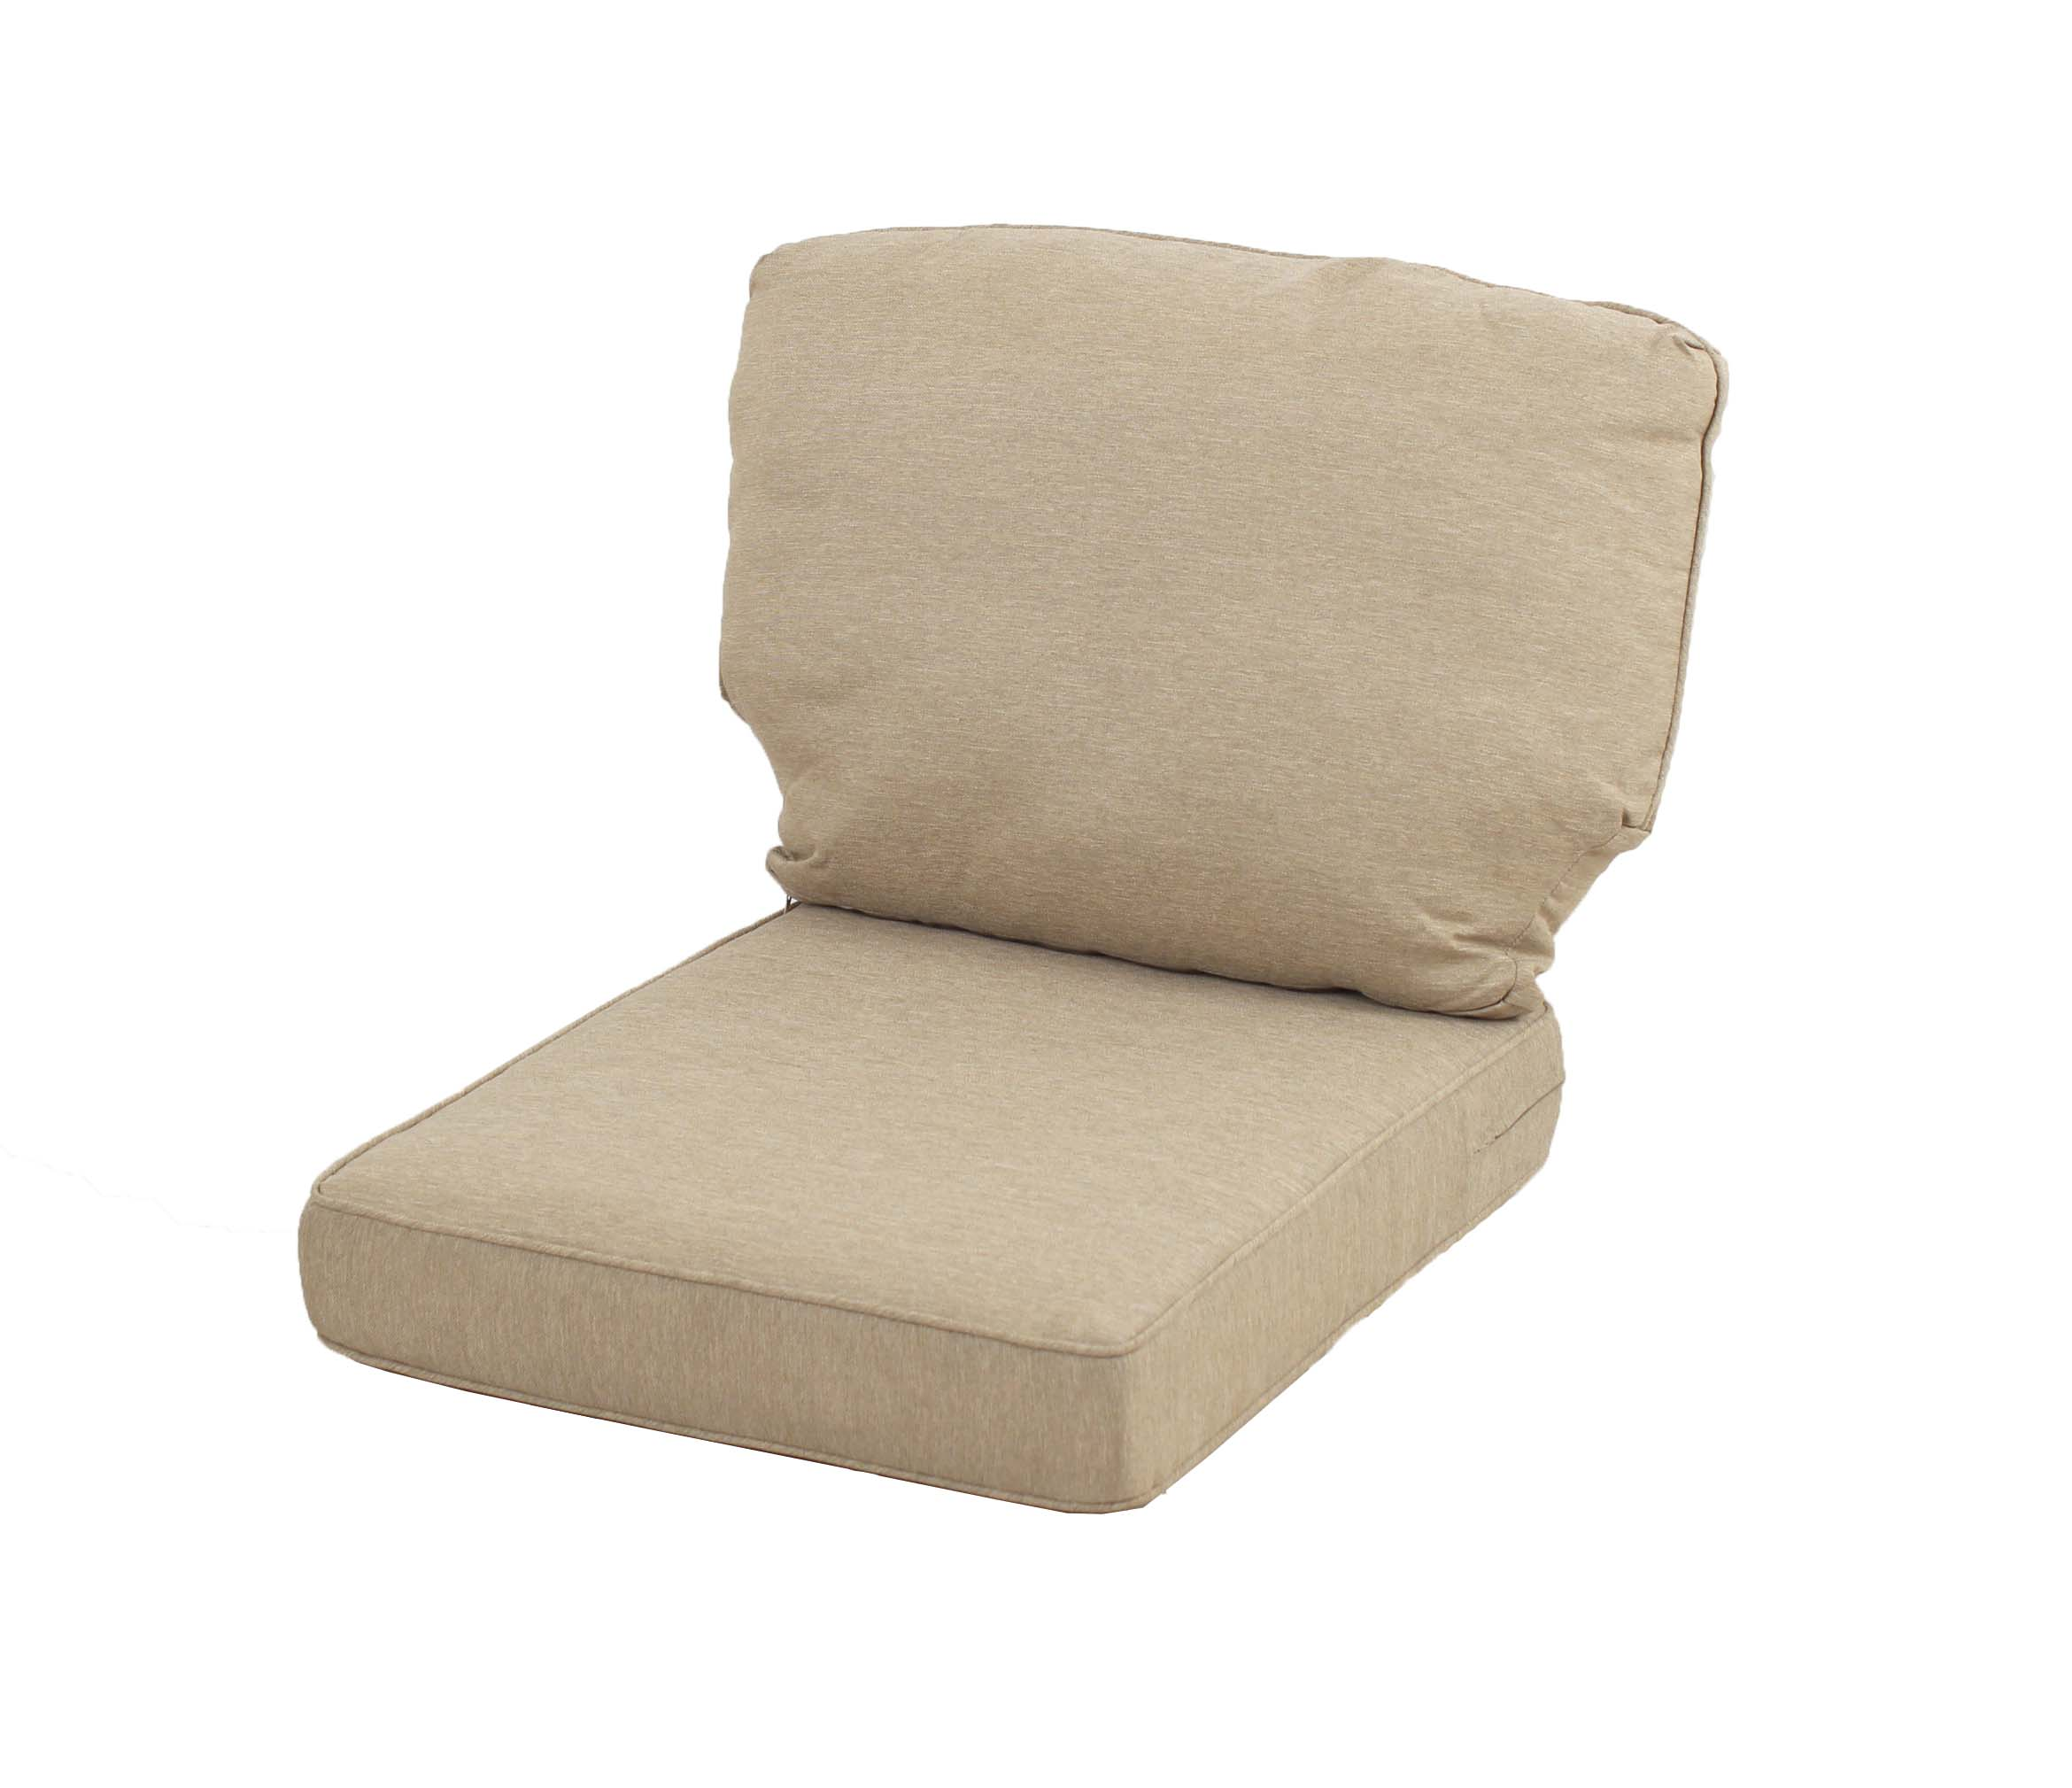 Parkside Replacement Patio Seating Cushion Shop Your Way